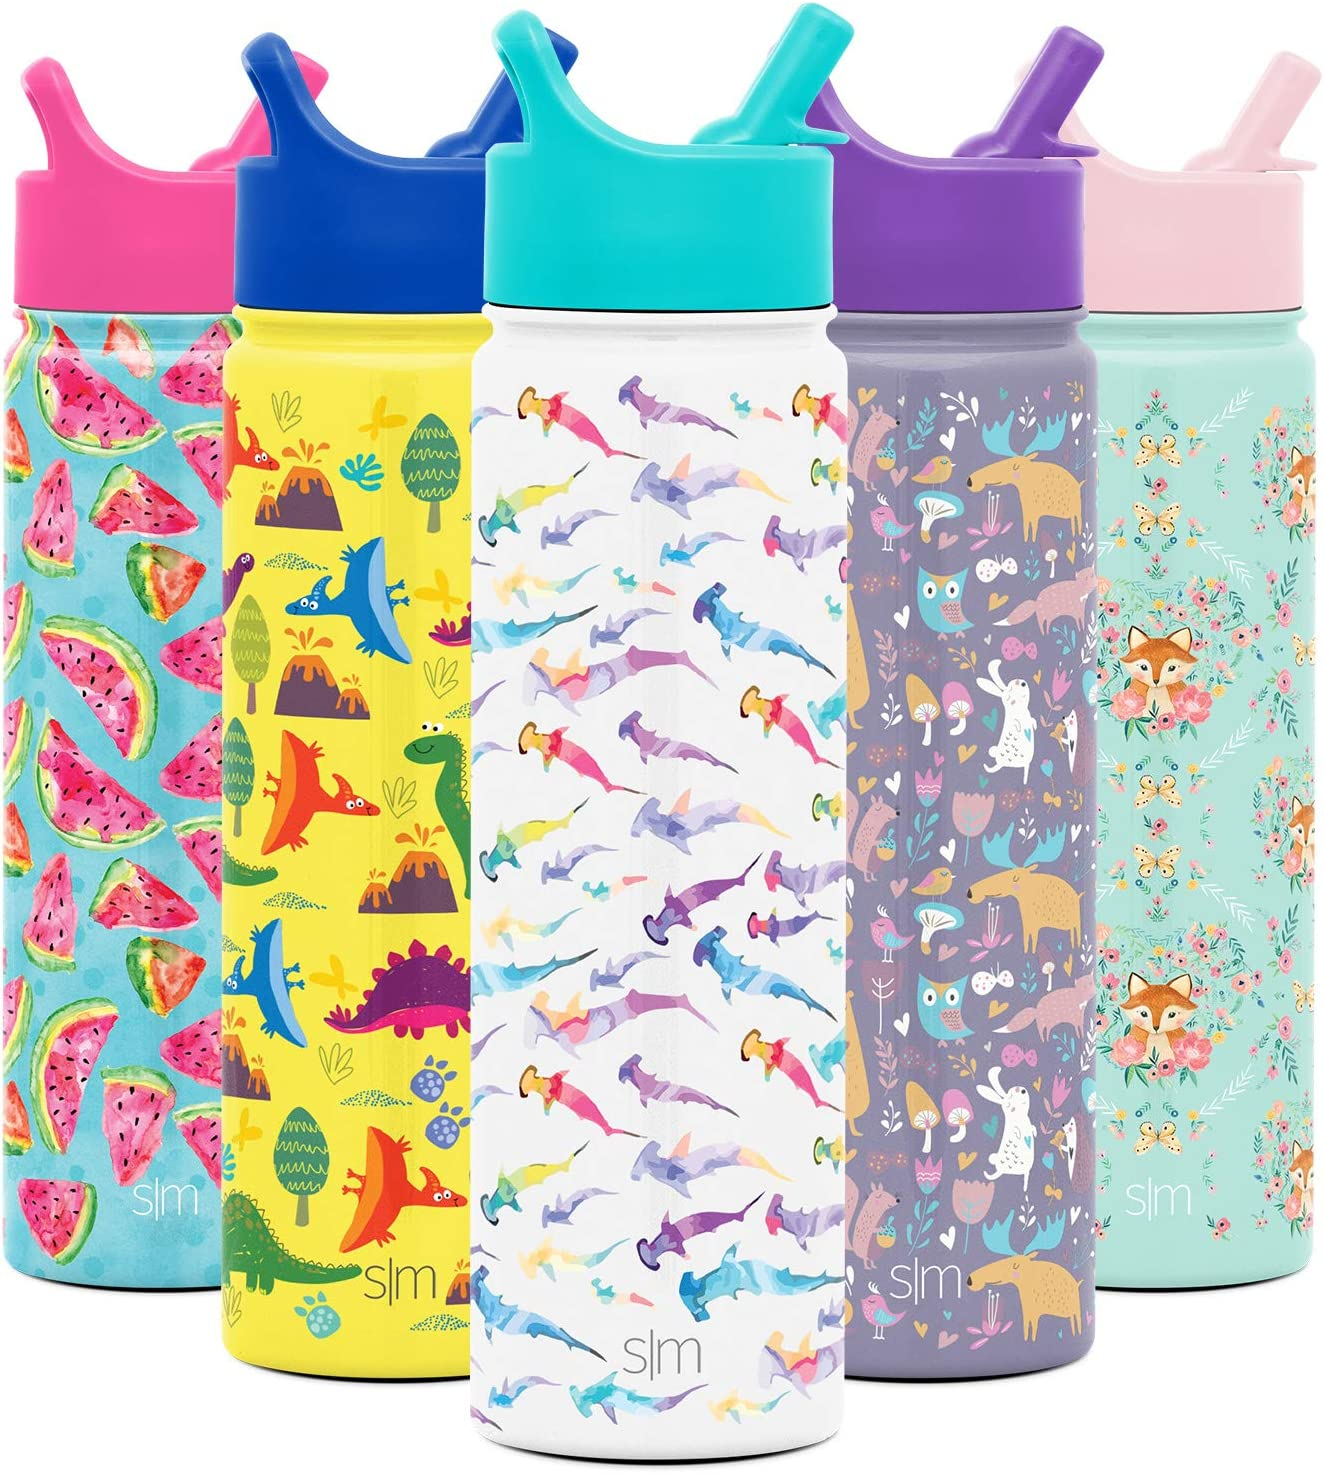 Simple Modern 22oz Summit Kids Water Bottle Thermos with Straw Lid - Dishwasher Safe Vacuum Insulated Double Wall Tumbler Travel Cup 18/8 Stainless Steel Watercolor Sharks